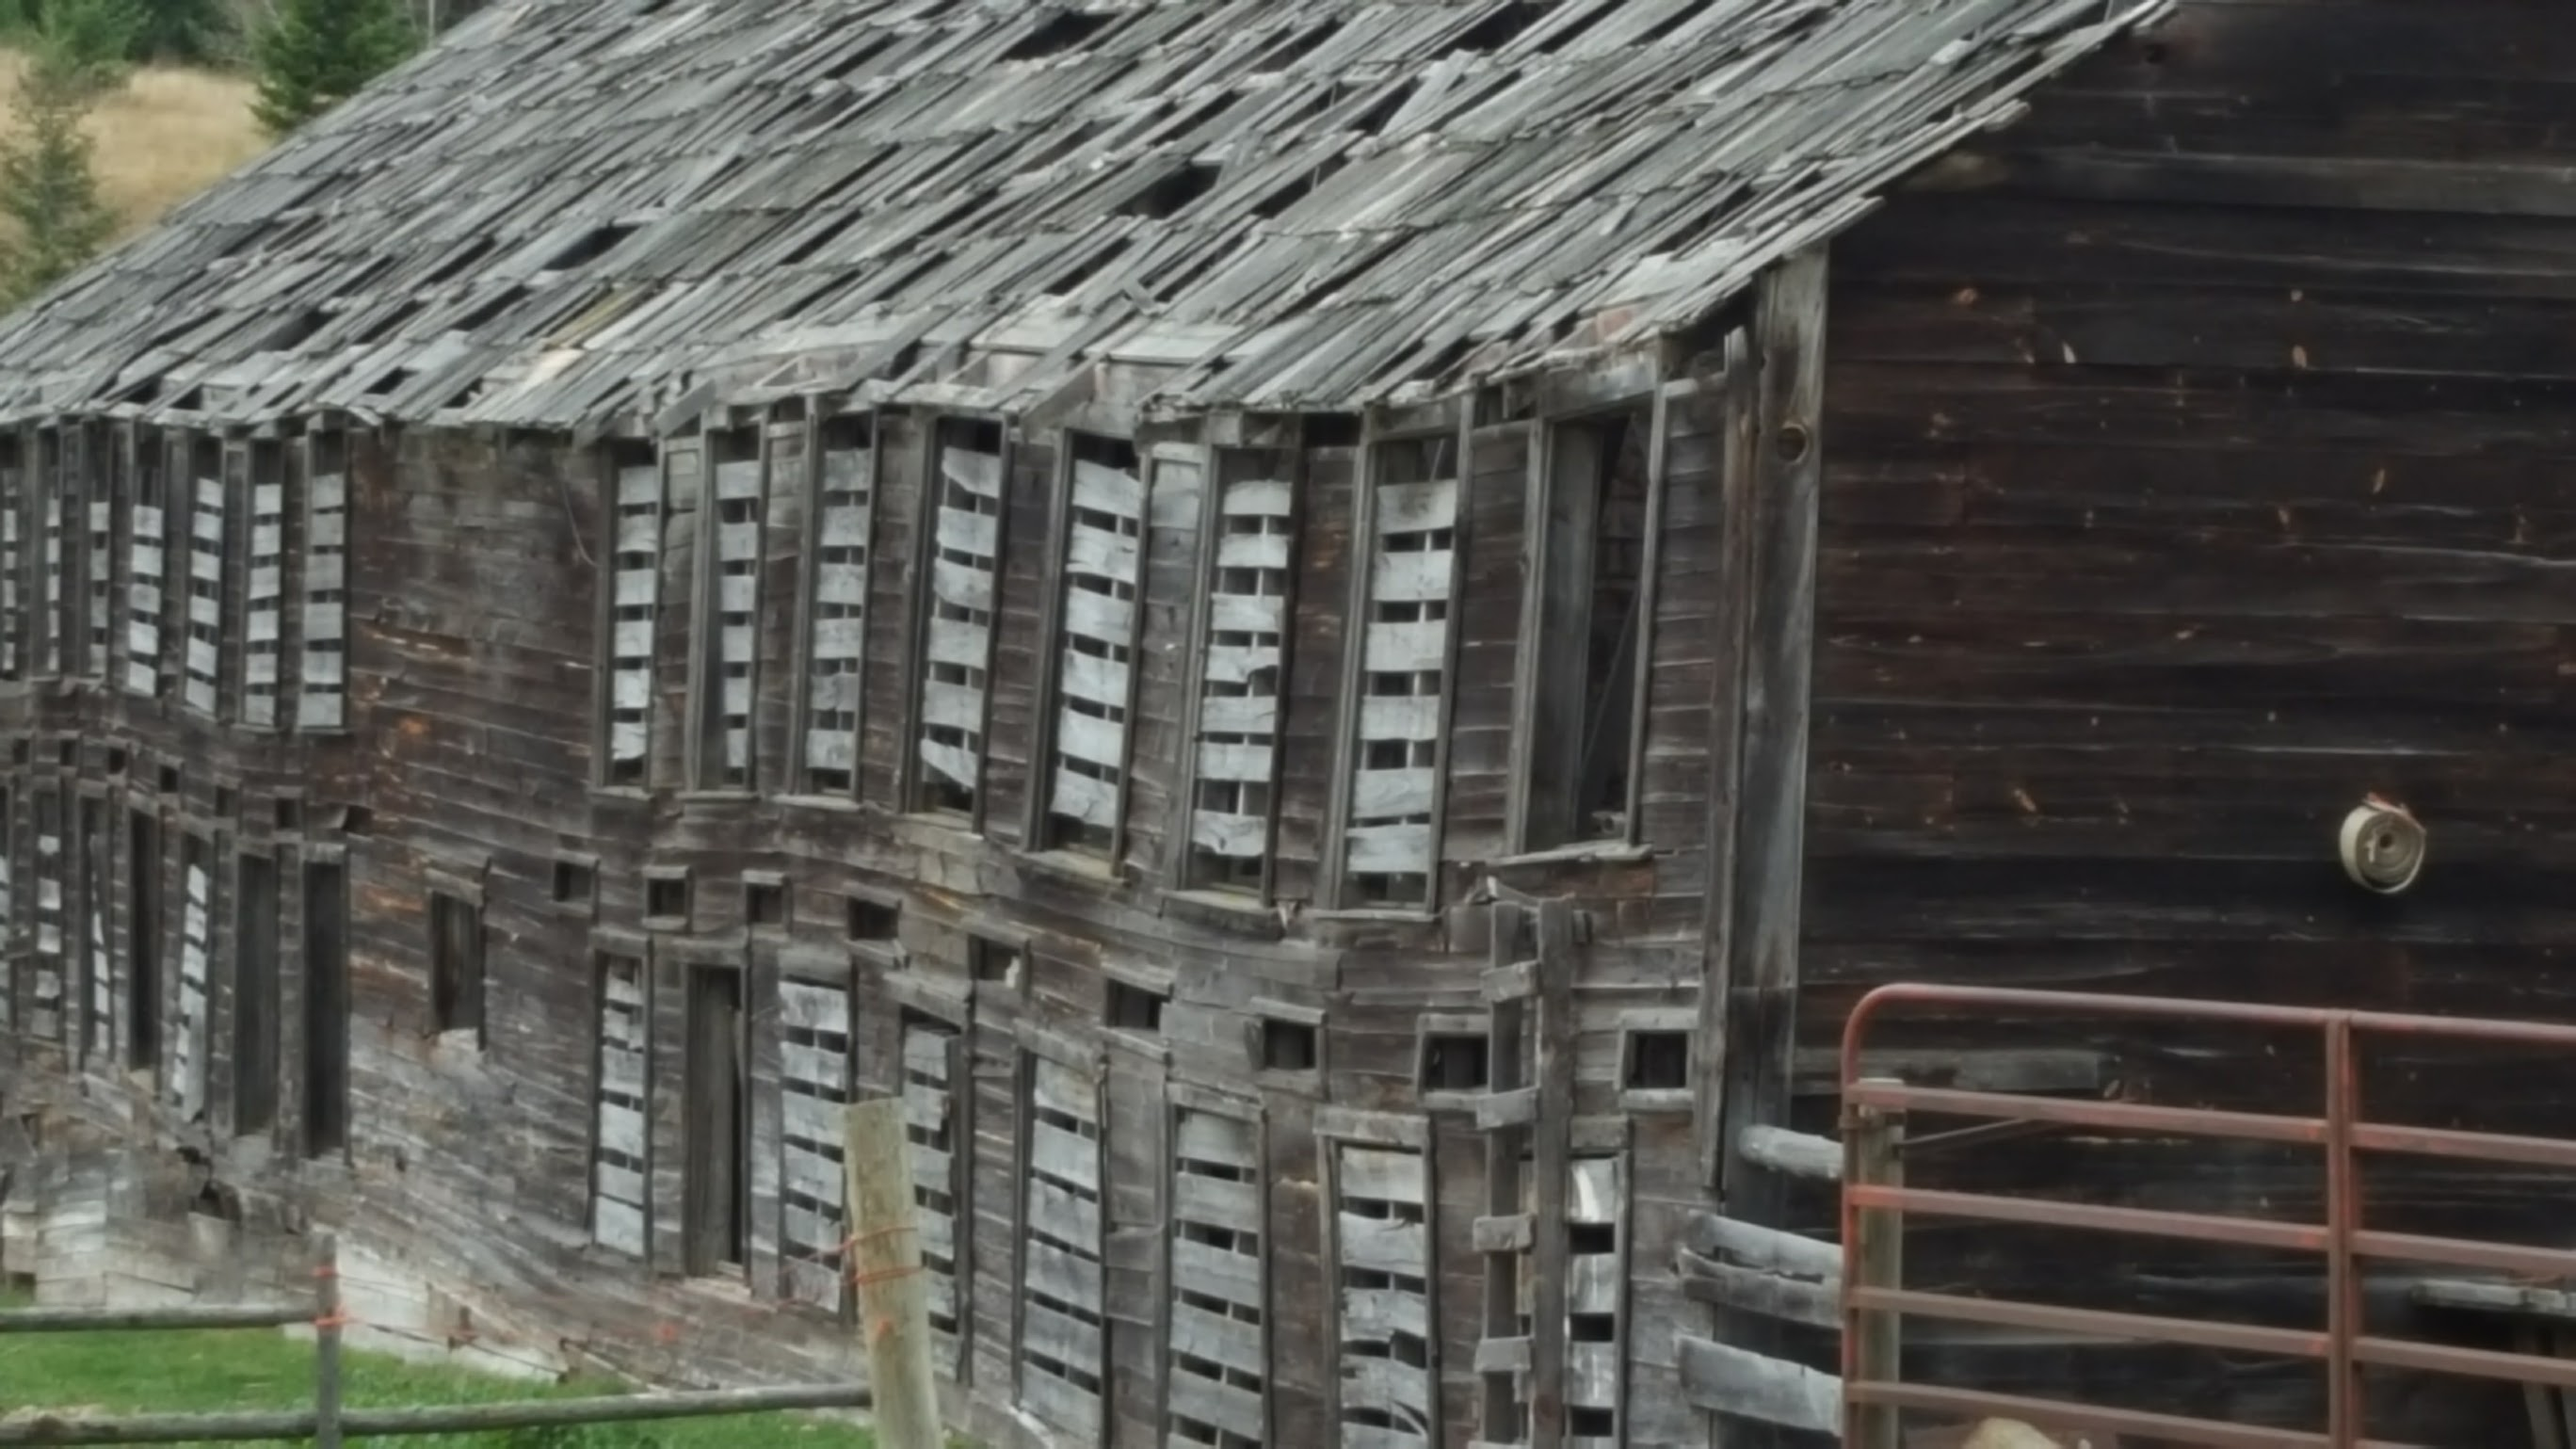 When Will We Rebuild Our Barn?